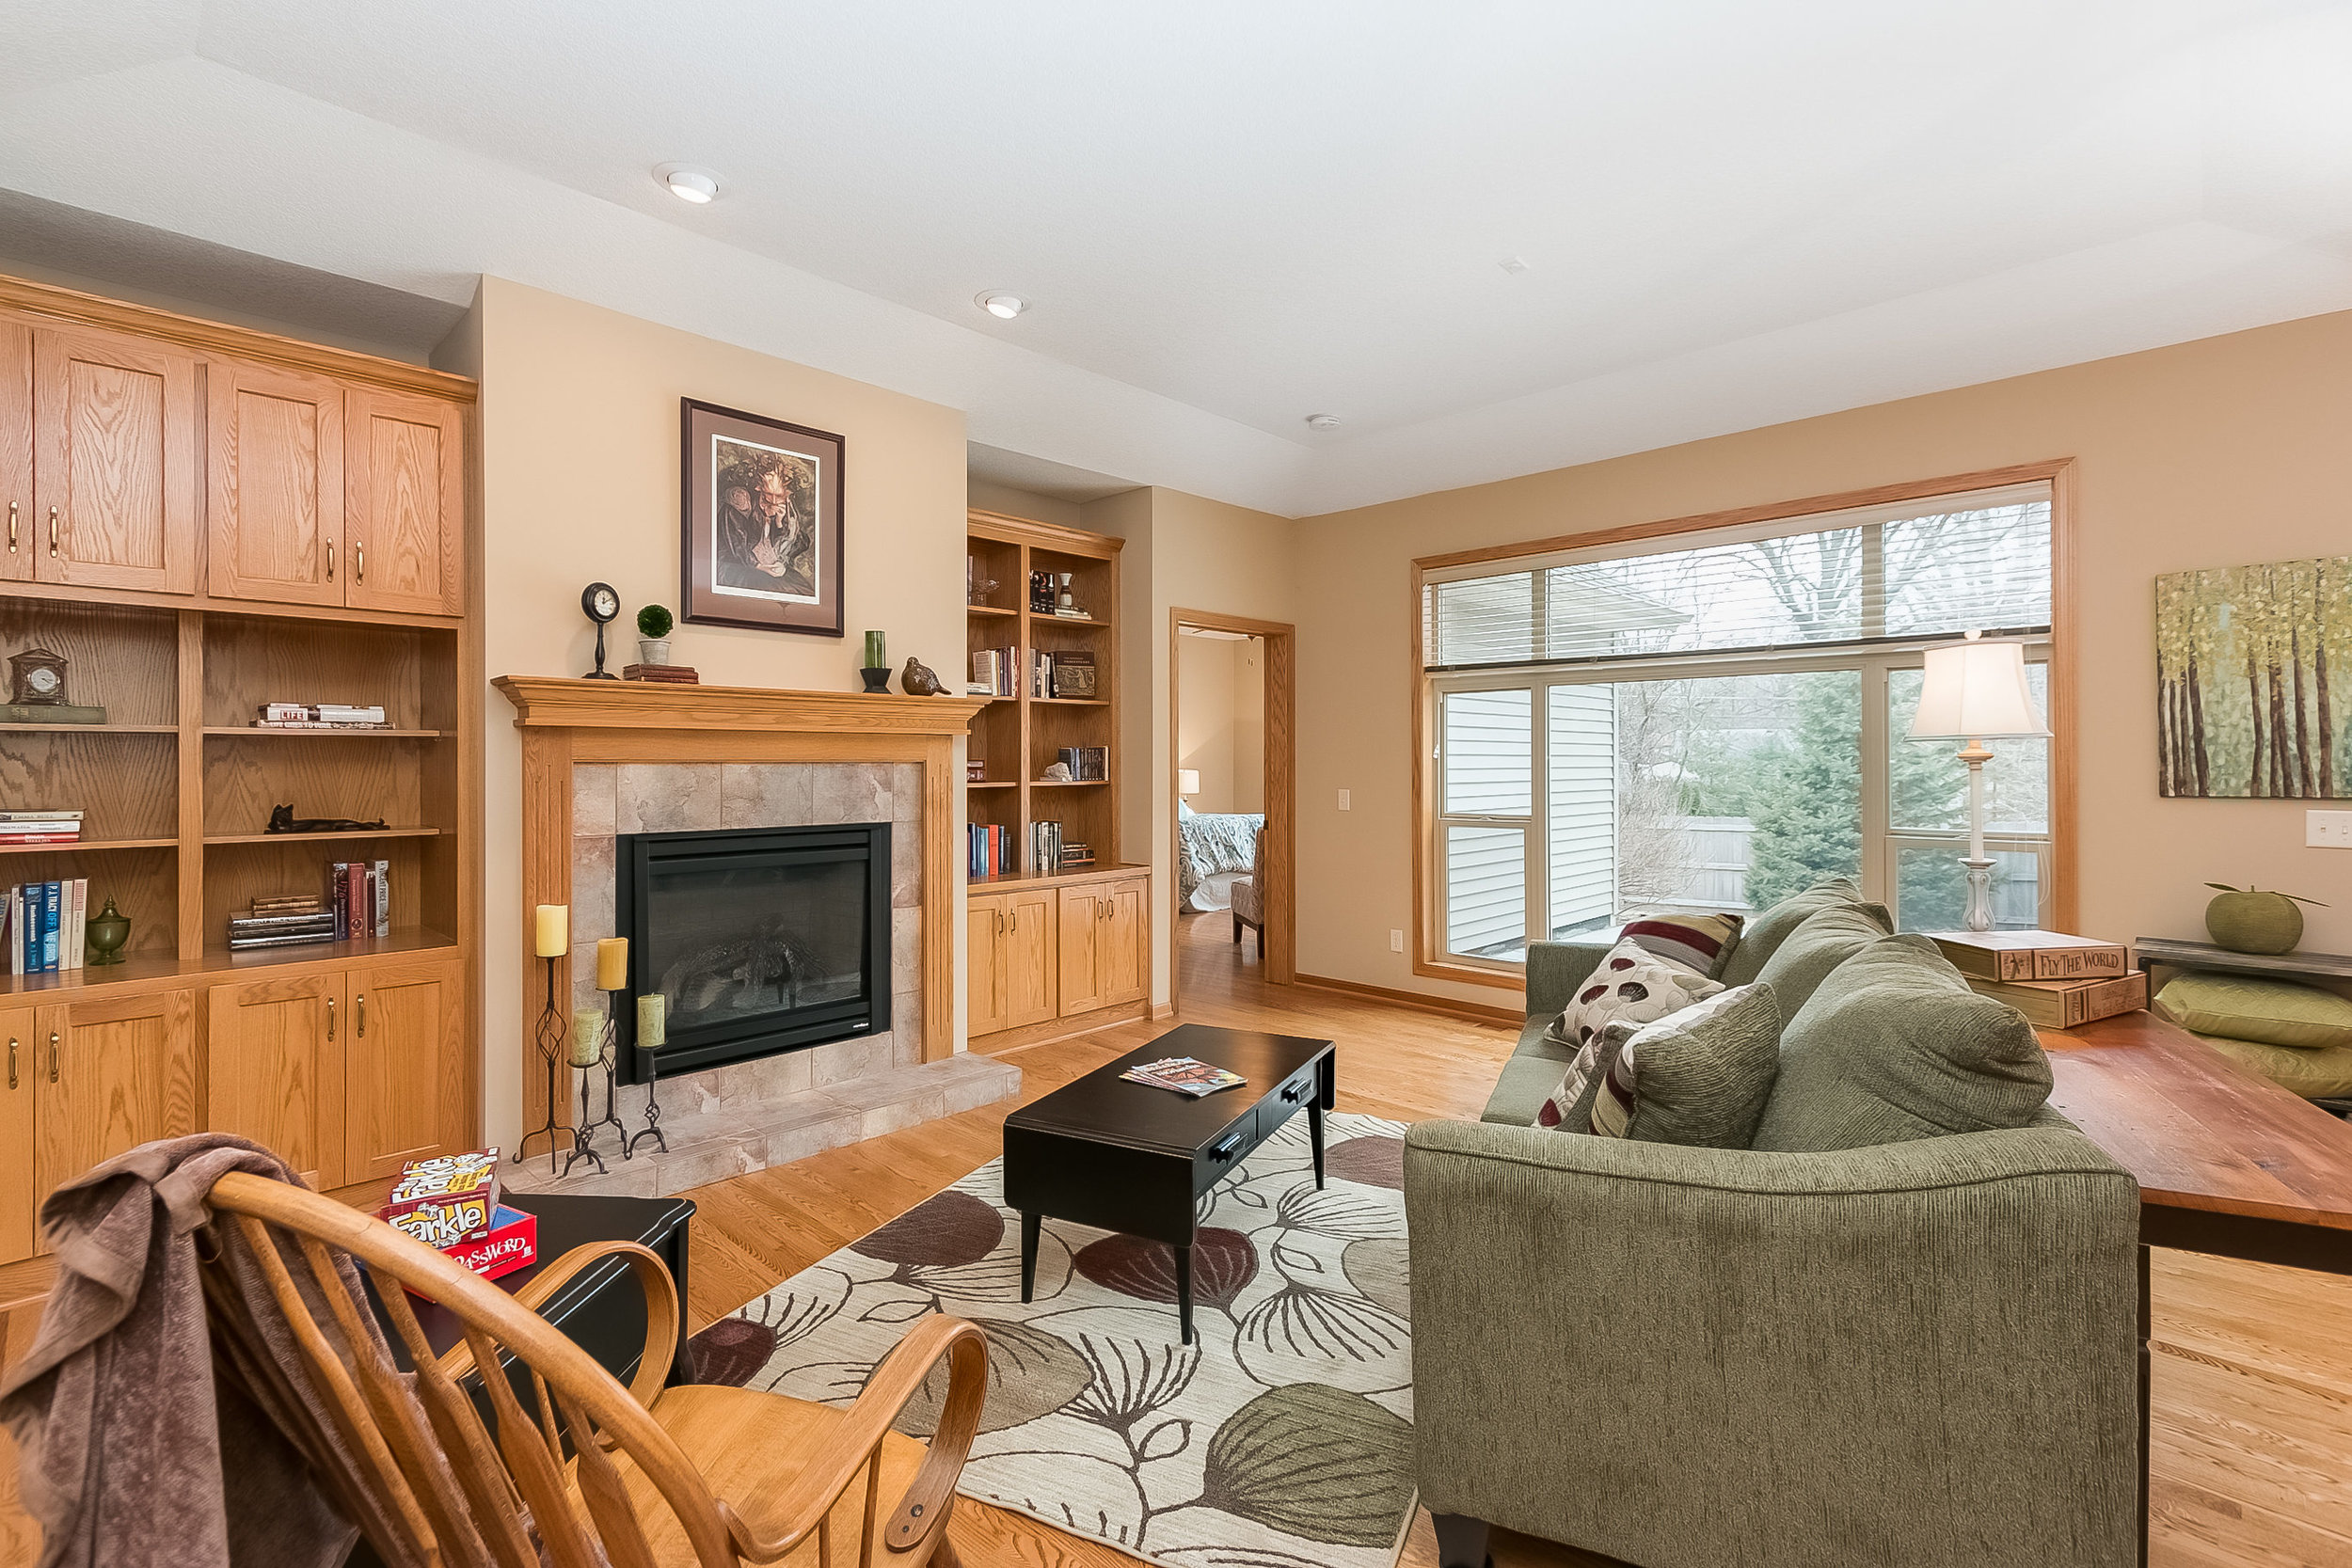 Staged home in Coon Rapids